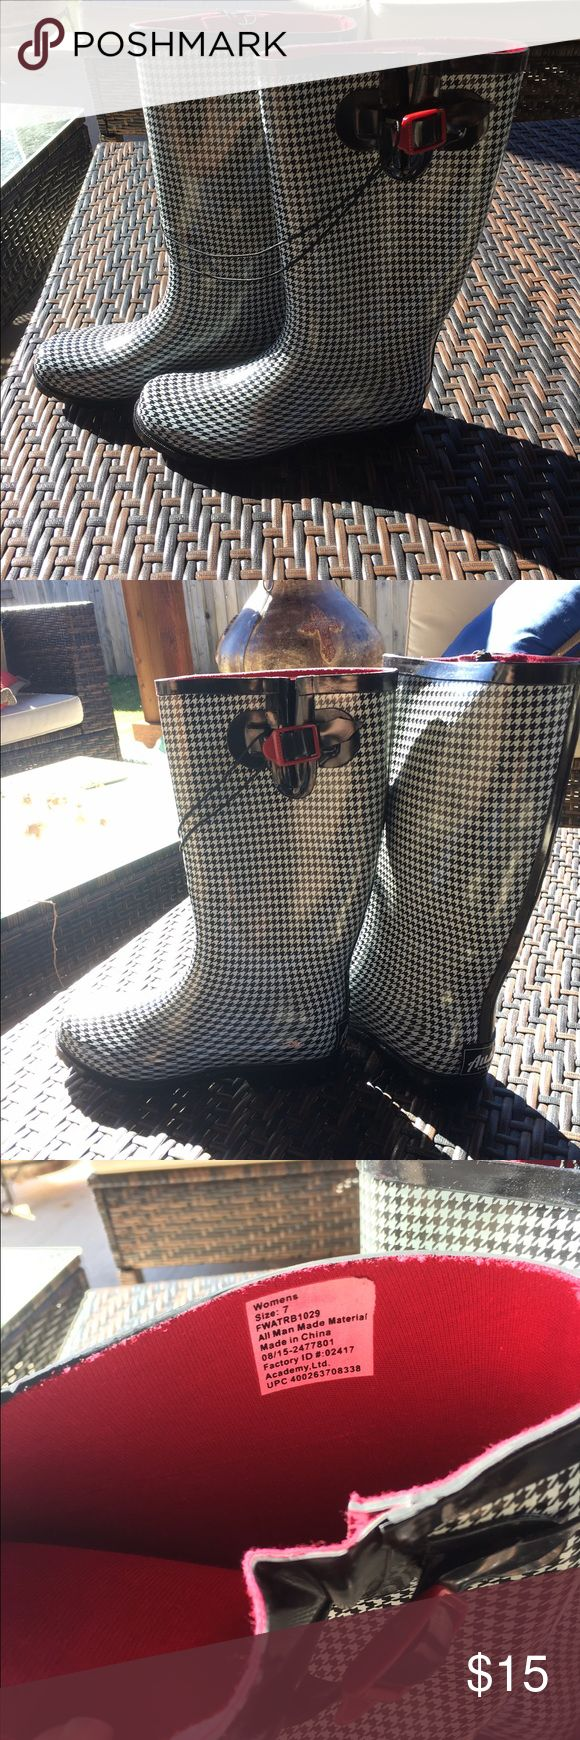 NWT Black and White Rain Boots Size 7 NWT Size 7 from Academy, Austin brand rain boots. Black and white houndstooth print with red felt interior lining. Red accent buckle. Austin Shoes Winter & Rain Boots